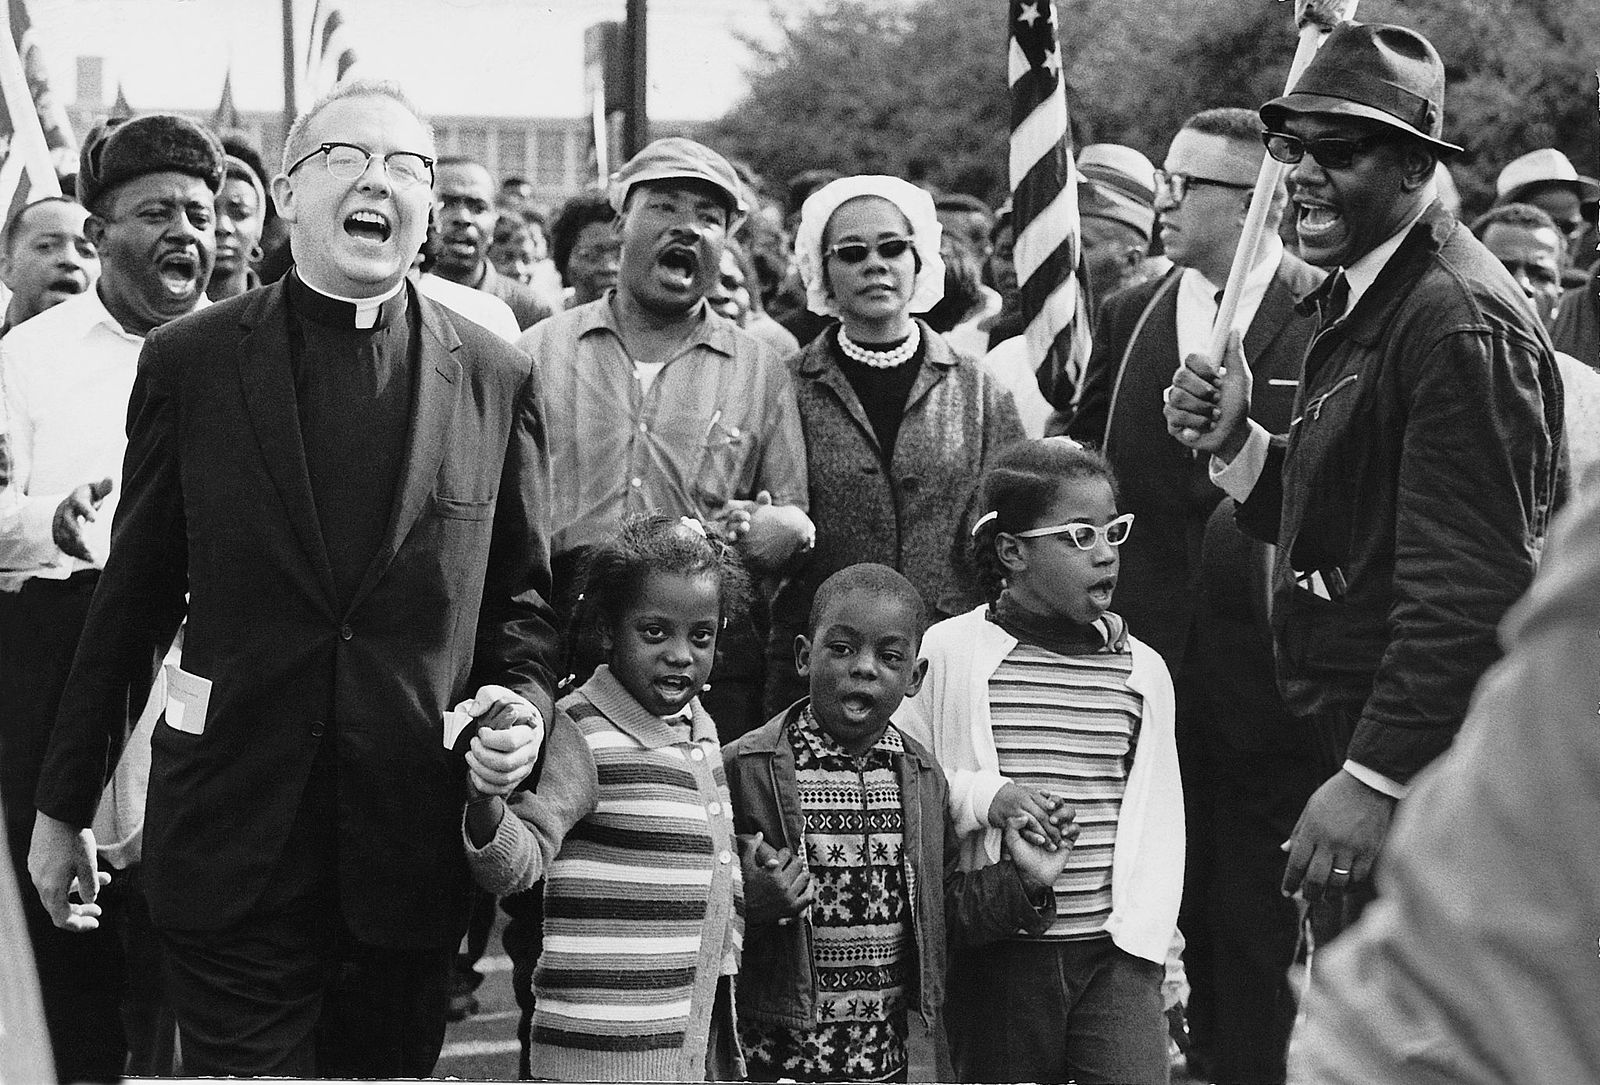 Dr. Ralph David Abernathy and his wife Mrs. Juanita Abernathy and their children with Dr. and Mrs. Martin Luther King march on the front line, leading the SELMA TO MONTGOMERY MARCH in 1965 for voting rights.